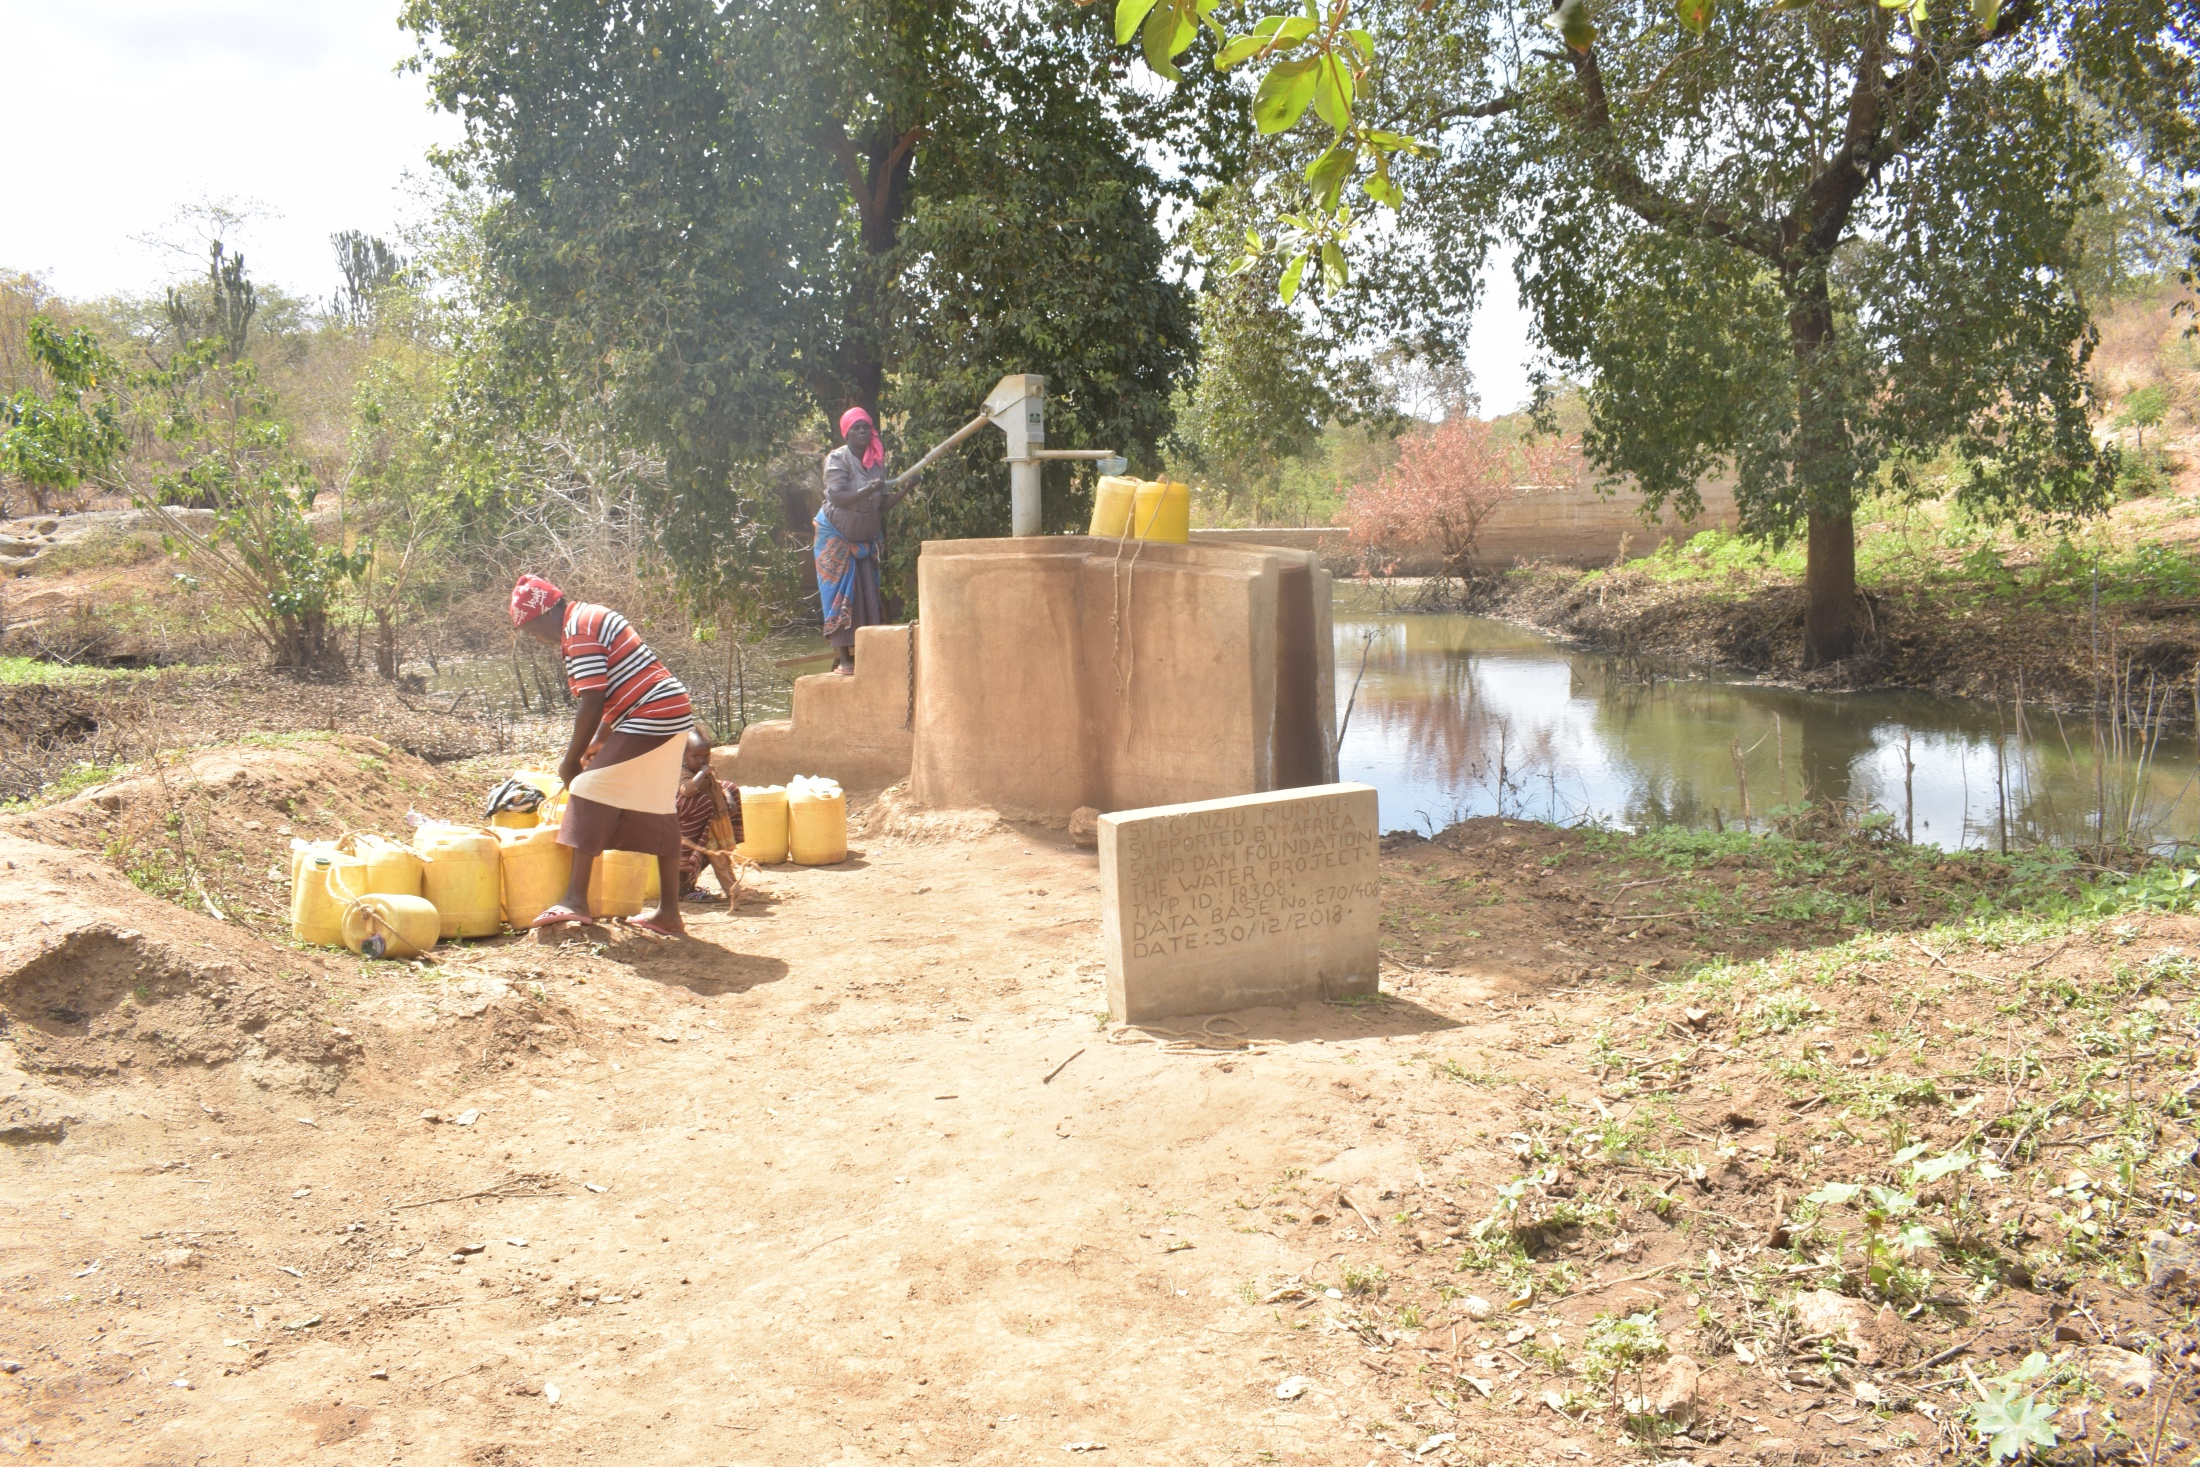 The Water Project : kenya18307-collecting-water-at-the-well-a-year-later